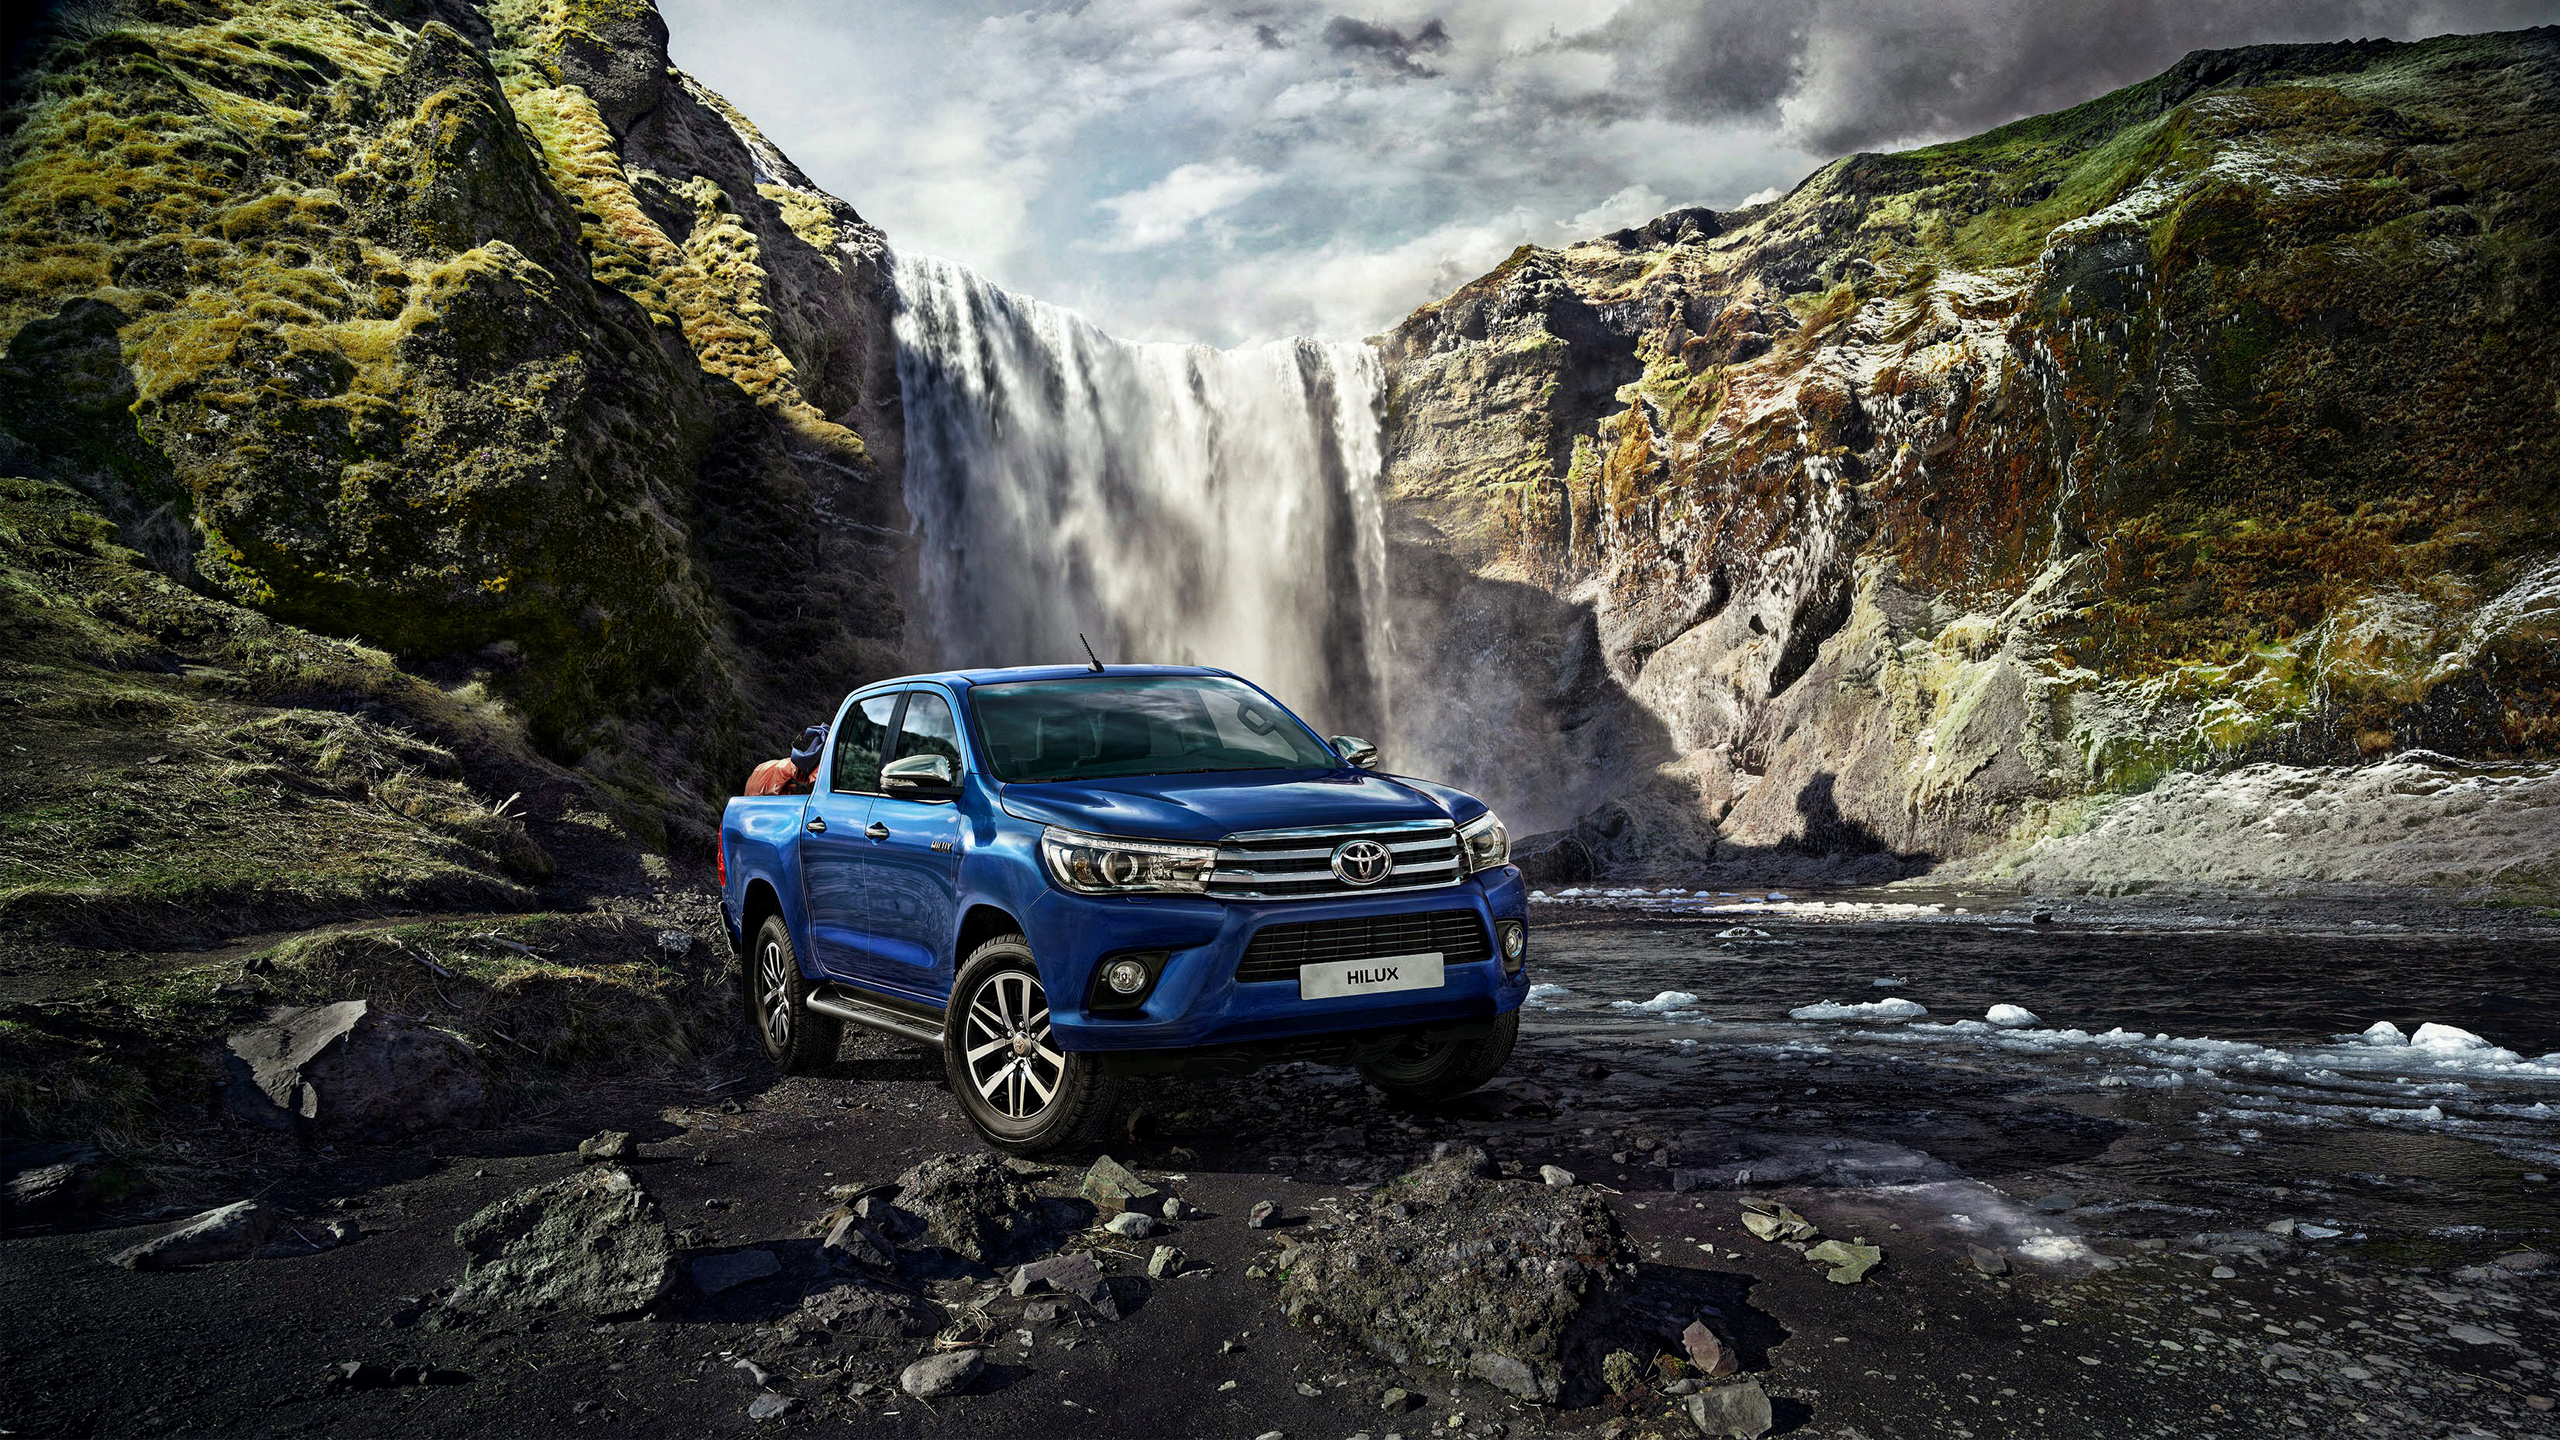 2015 Toyota Hilux Wallpaper